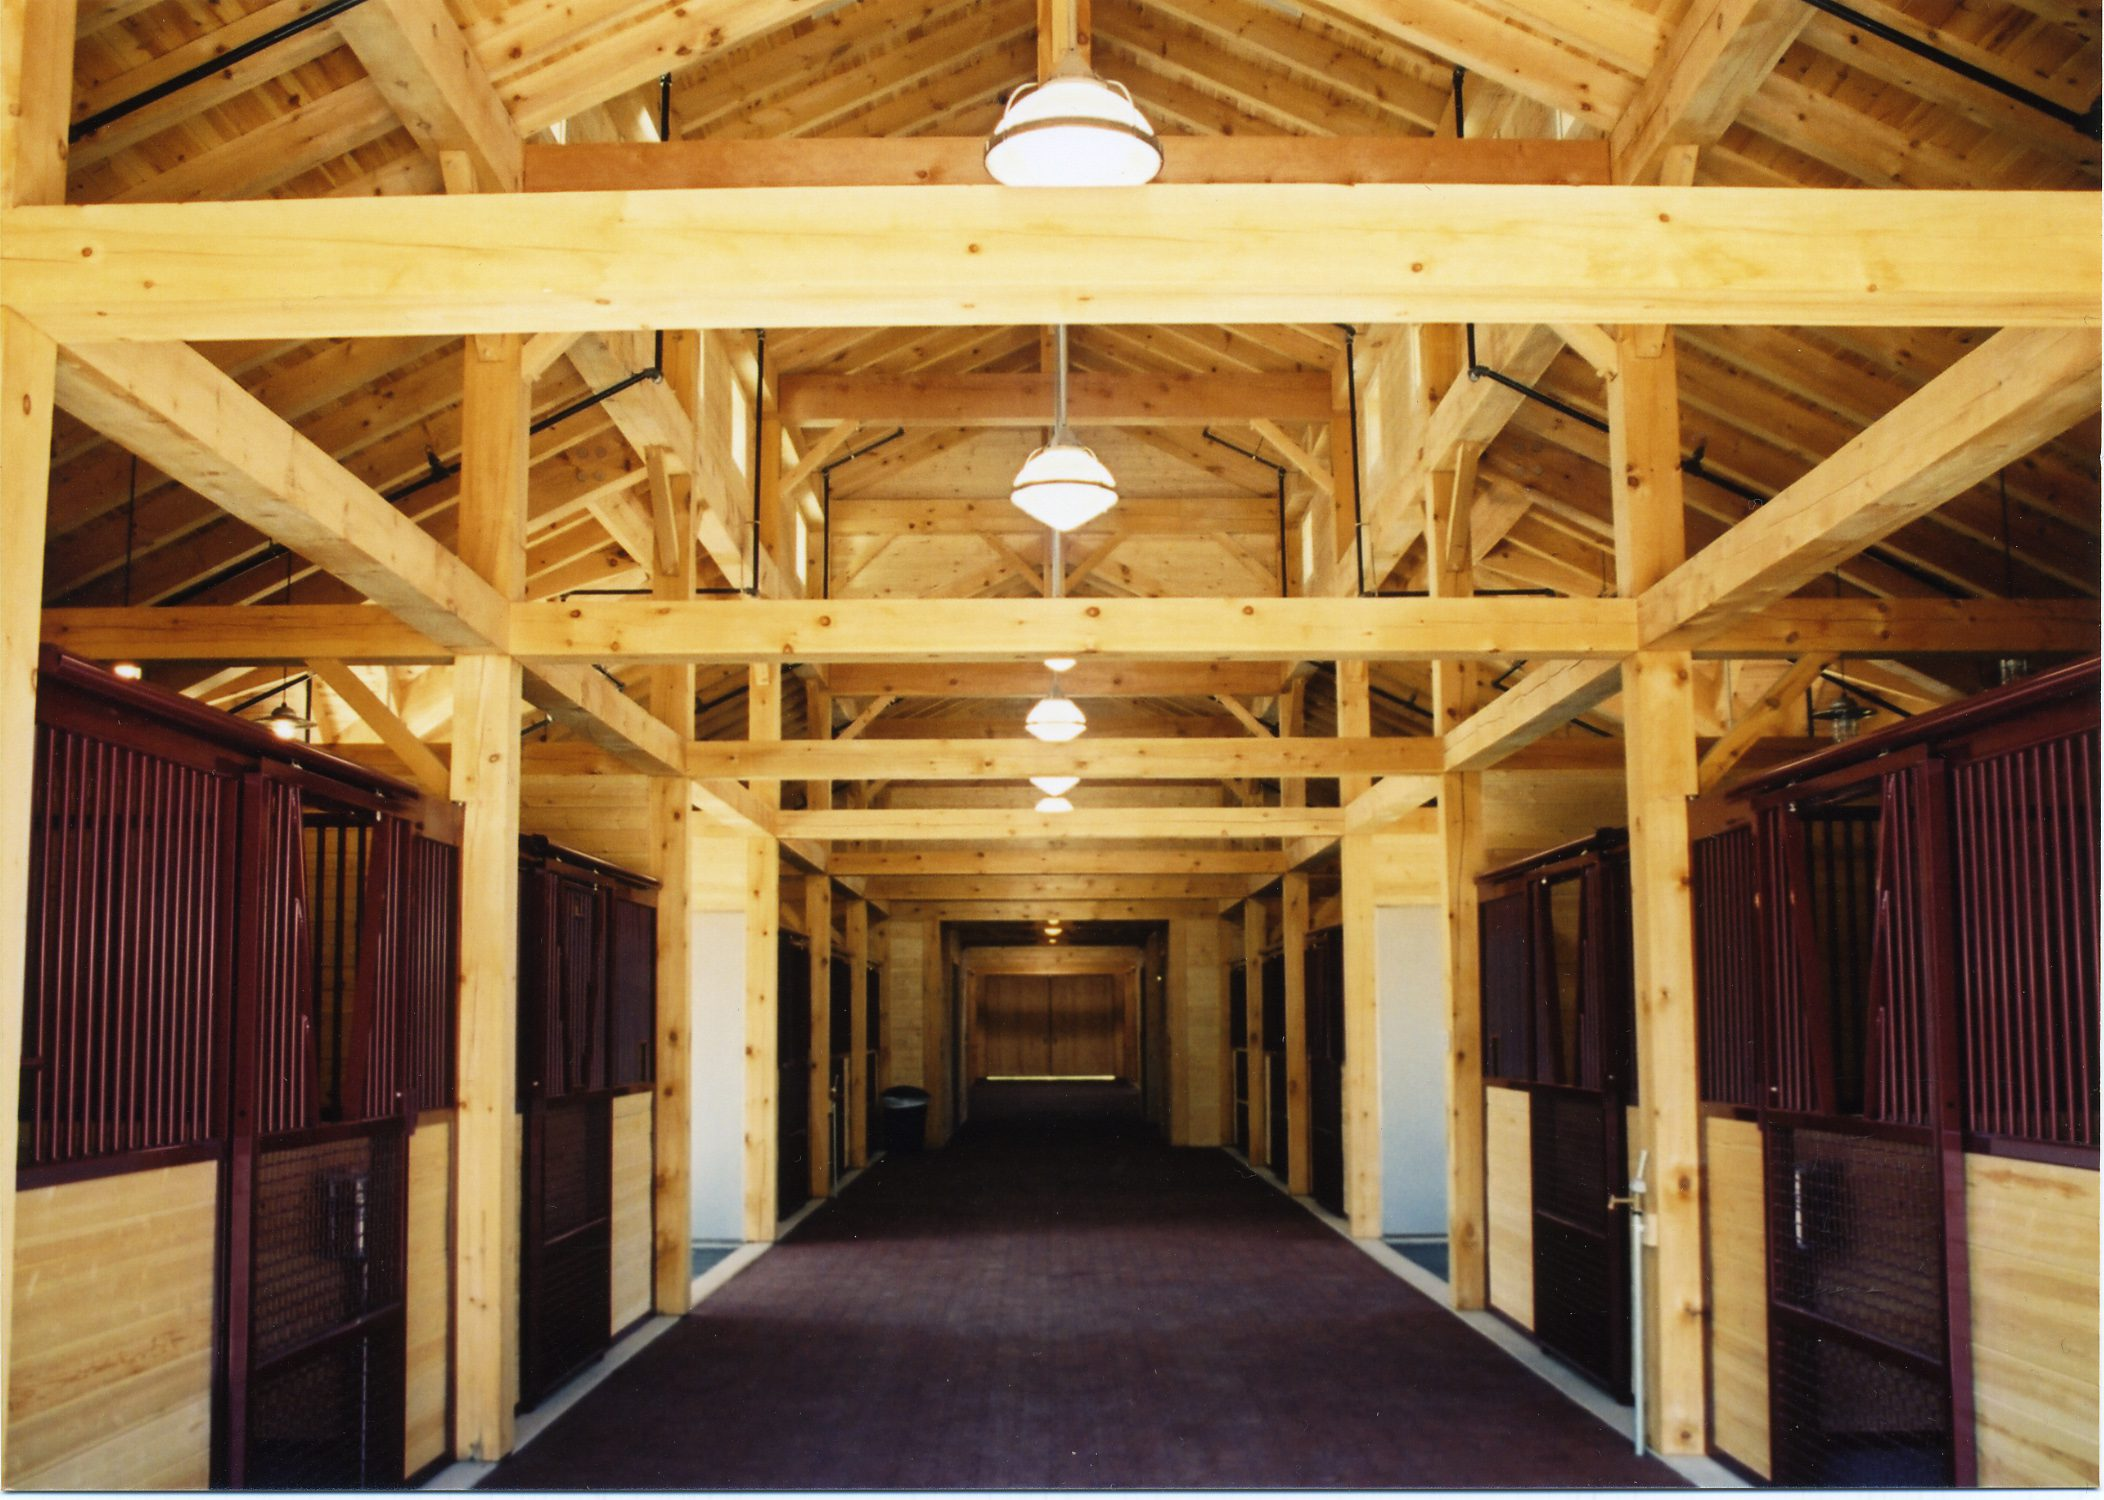 Normerica Timber Frames, Commercial Project, Chaparral Ranch, Barn Stalls, Aspen, USA, Interior